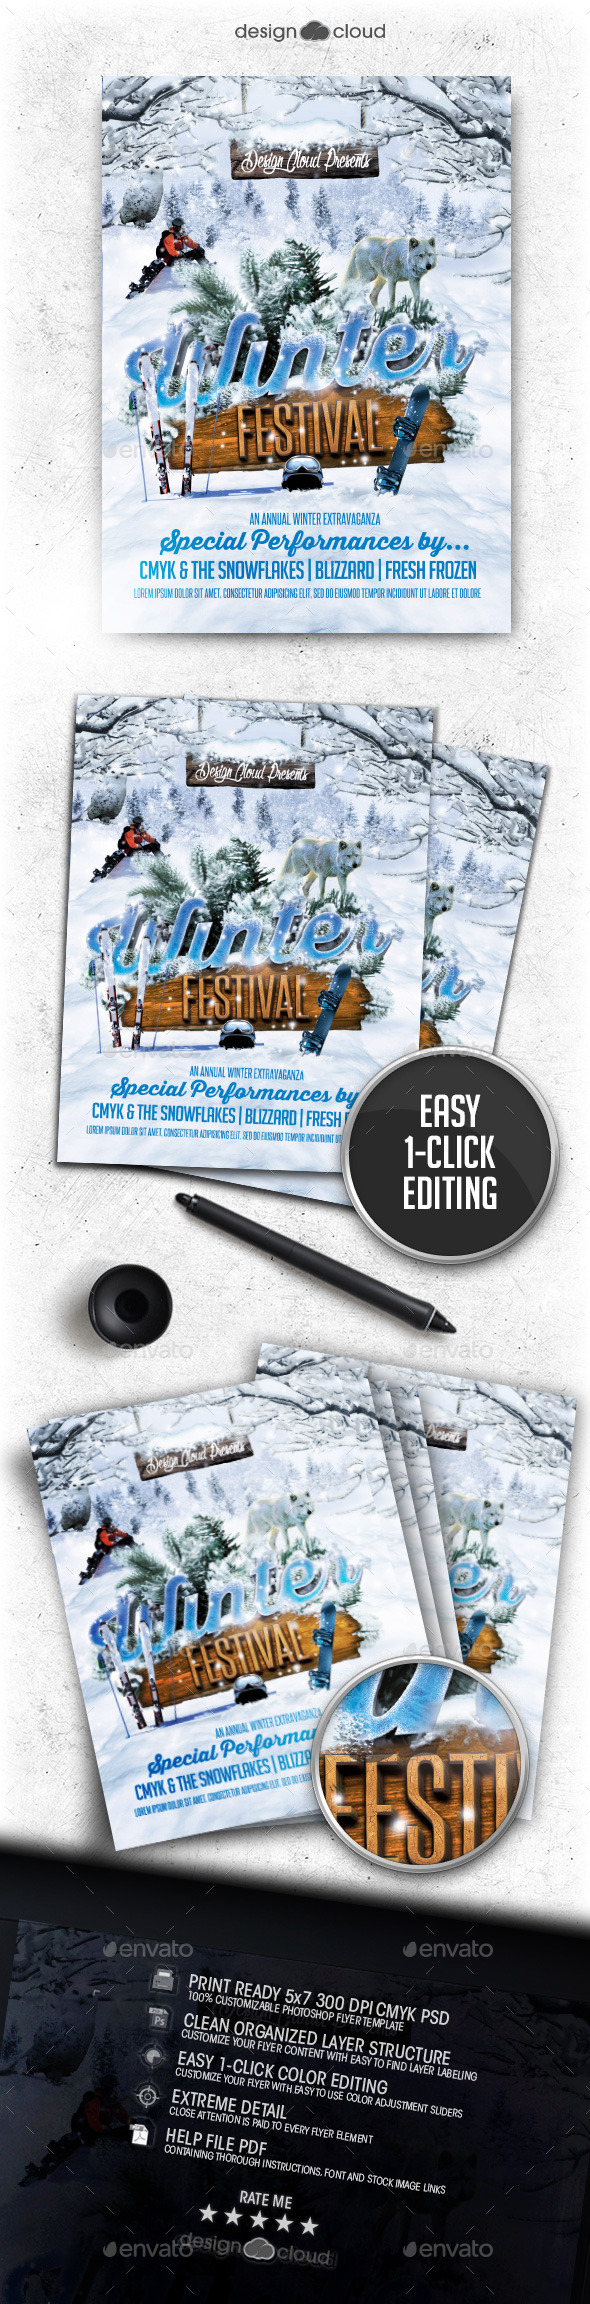 Winter Festival Flyer Template - Clubs & Parties Events